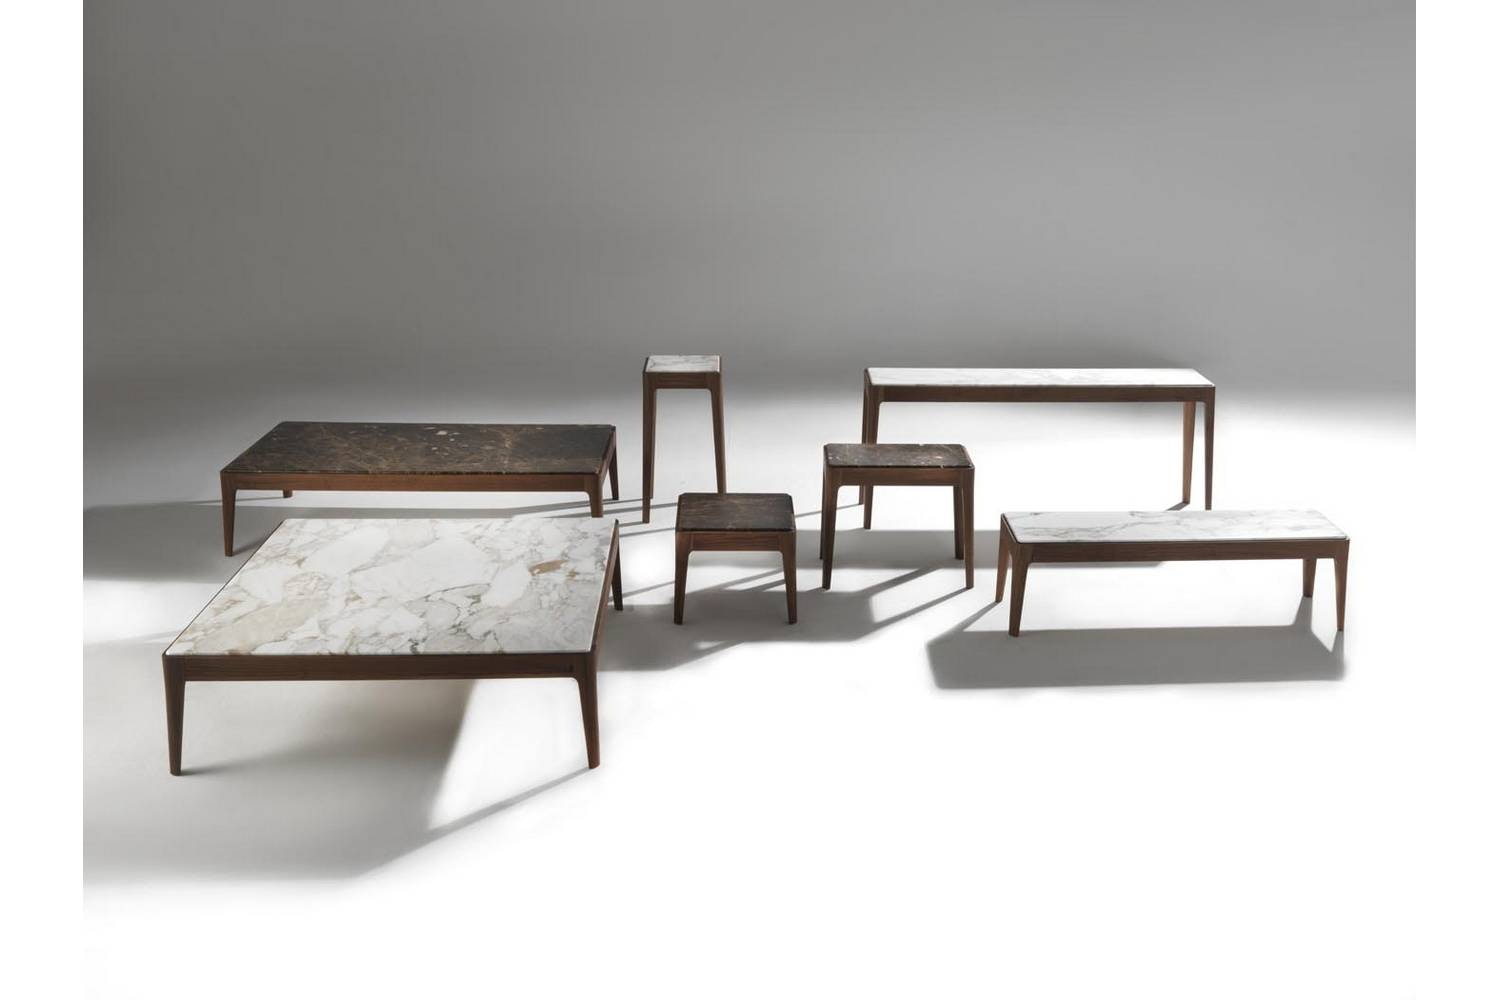 Ziggy Coffee Table by C. Ballabio for Porada